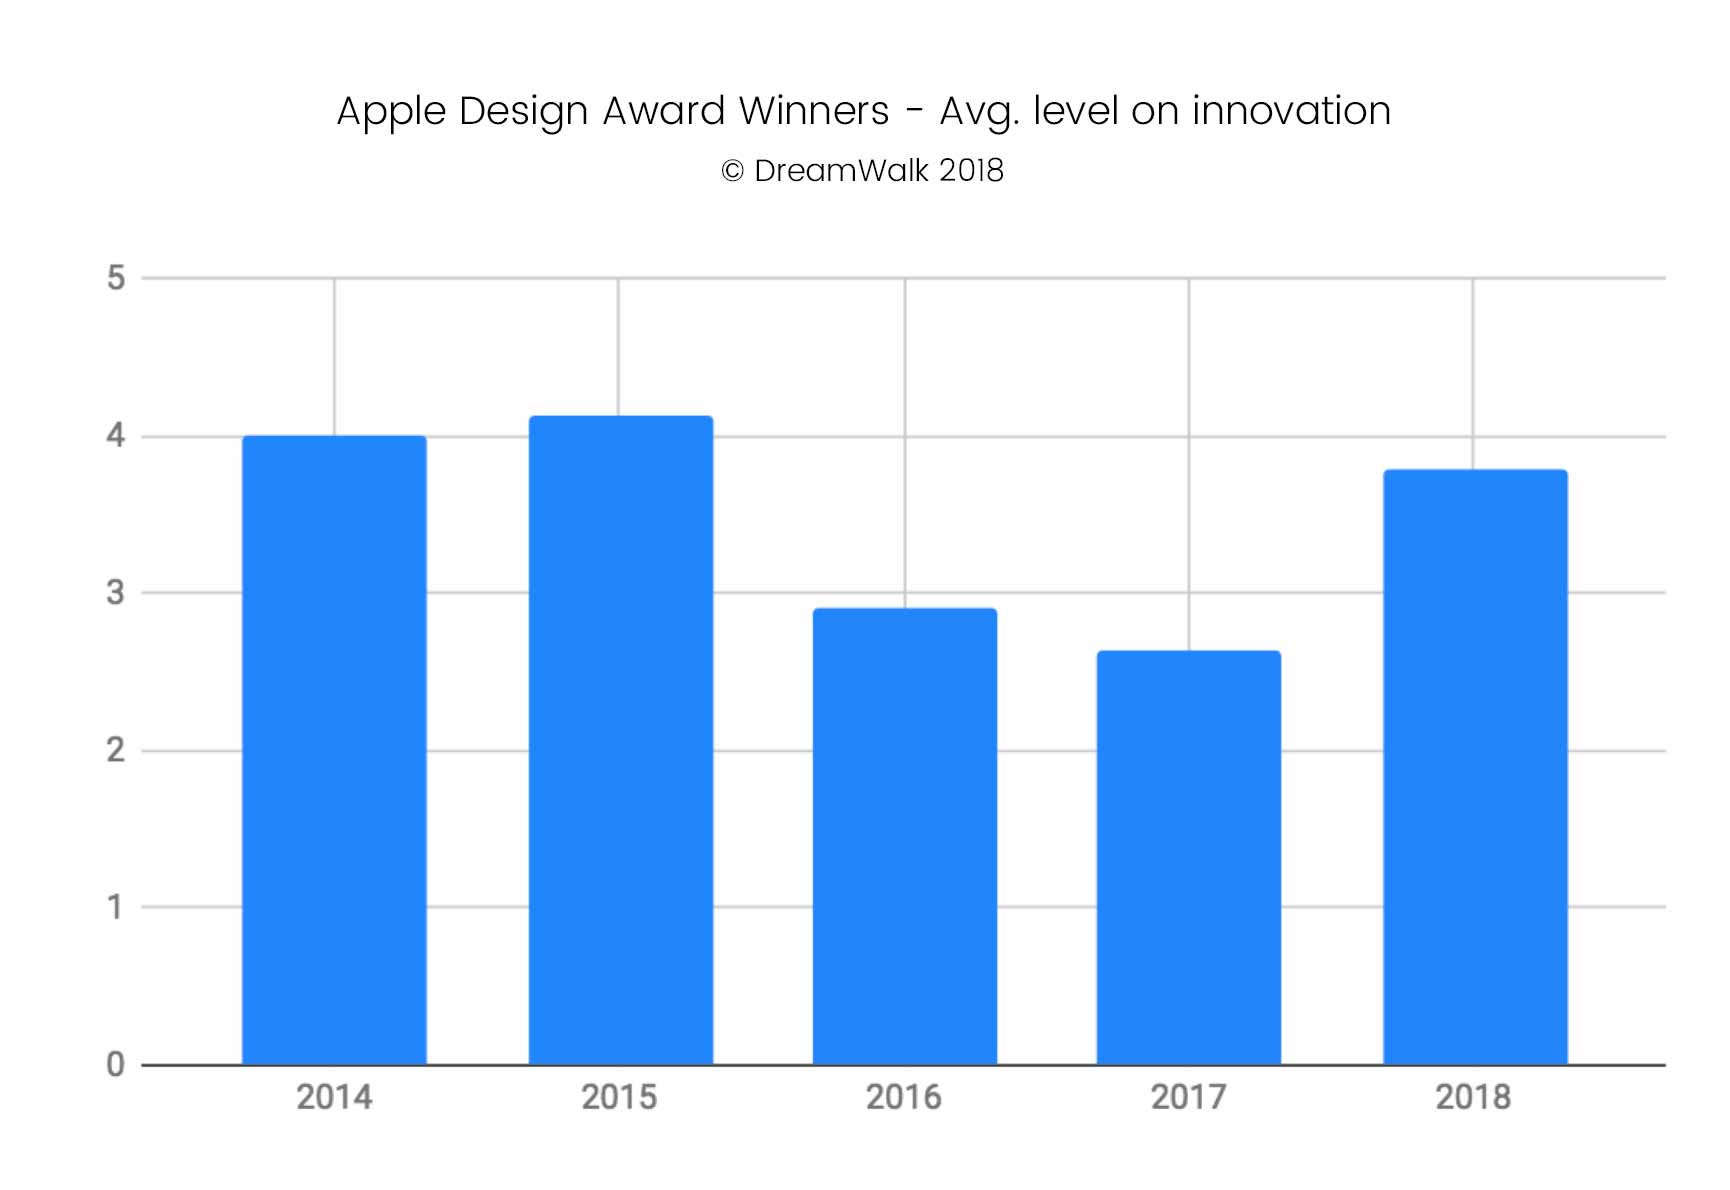 2018 Apple Design Award Winners - Avg. level of innovation